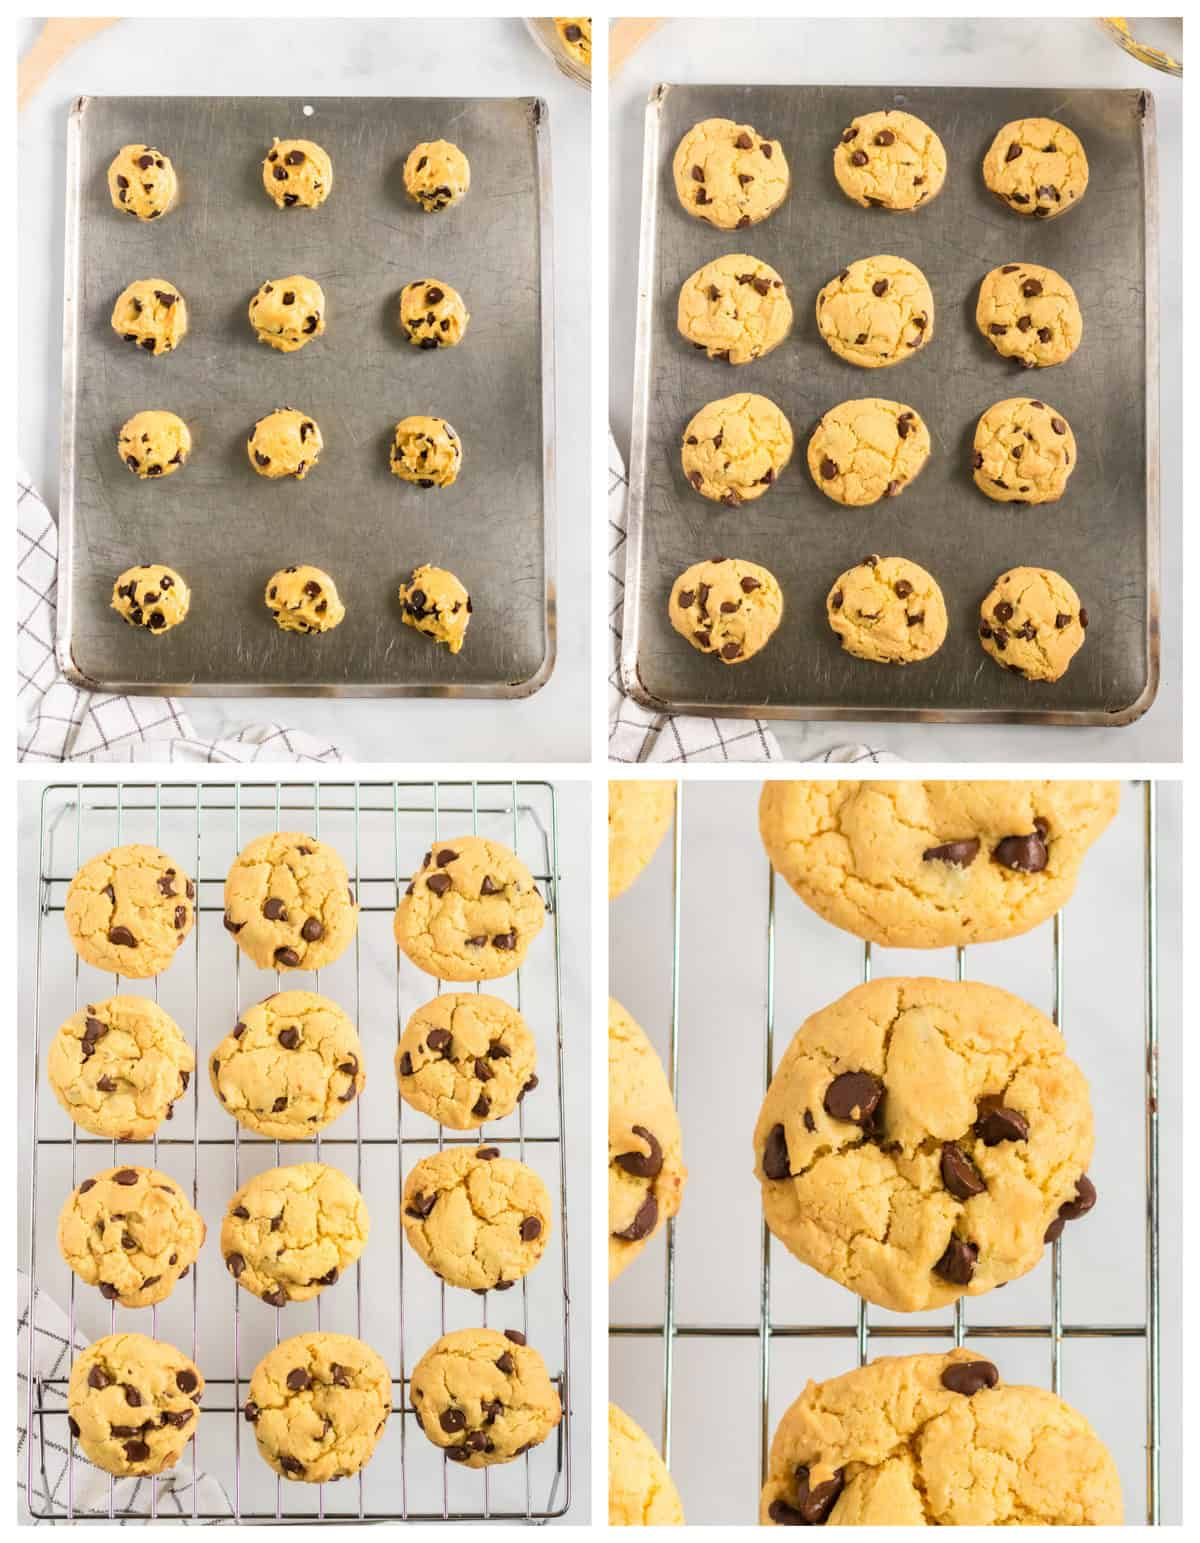 four step collage showing cookie batter on a baking sheet, the baked cookies, and the cookies on a cooling rack